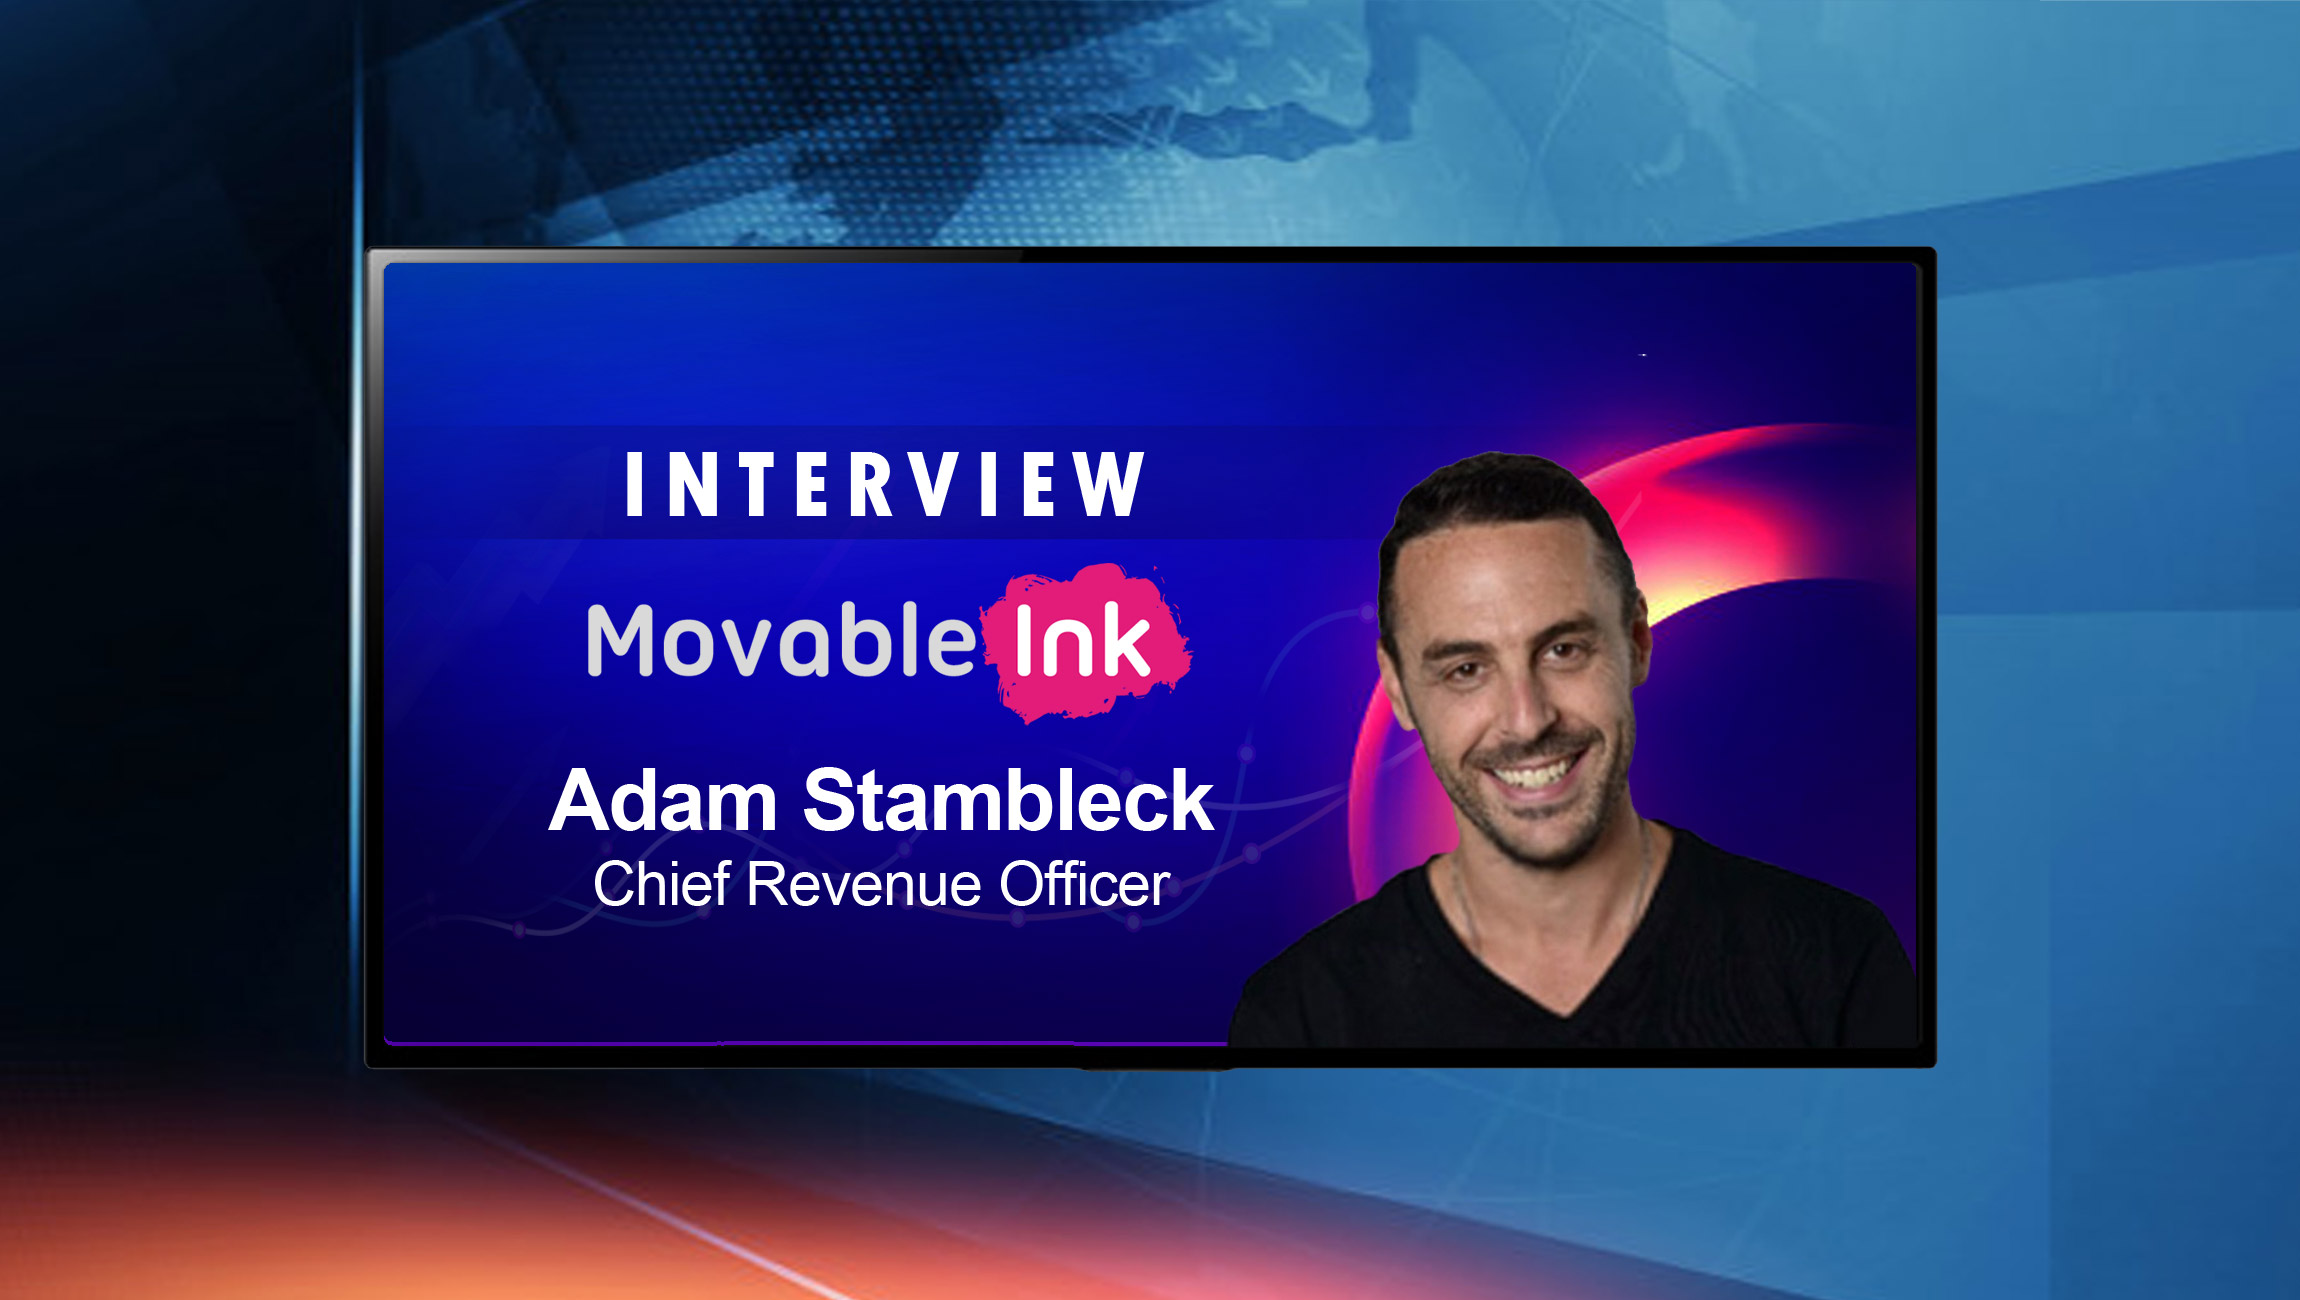 SalesTechStar Interview with Adam Stambleck, Chief Revenue Officer at Movable Ink